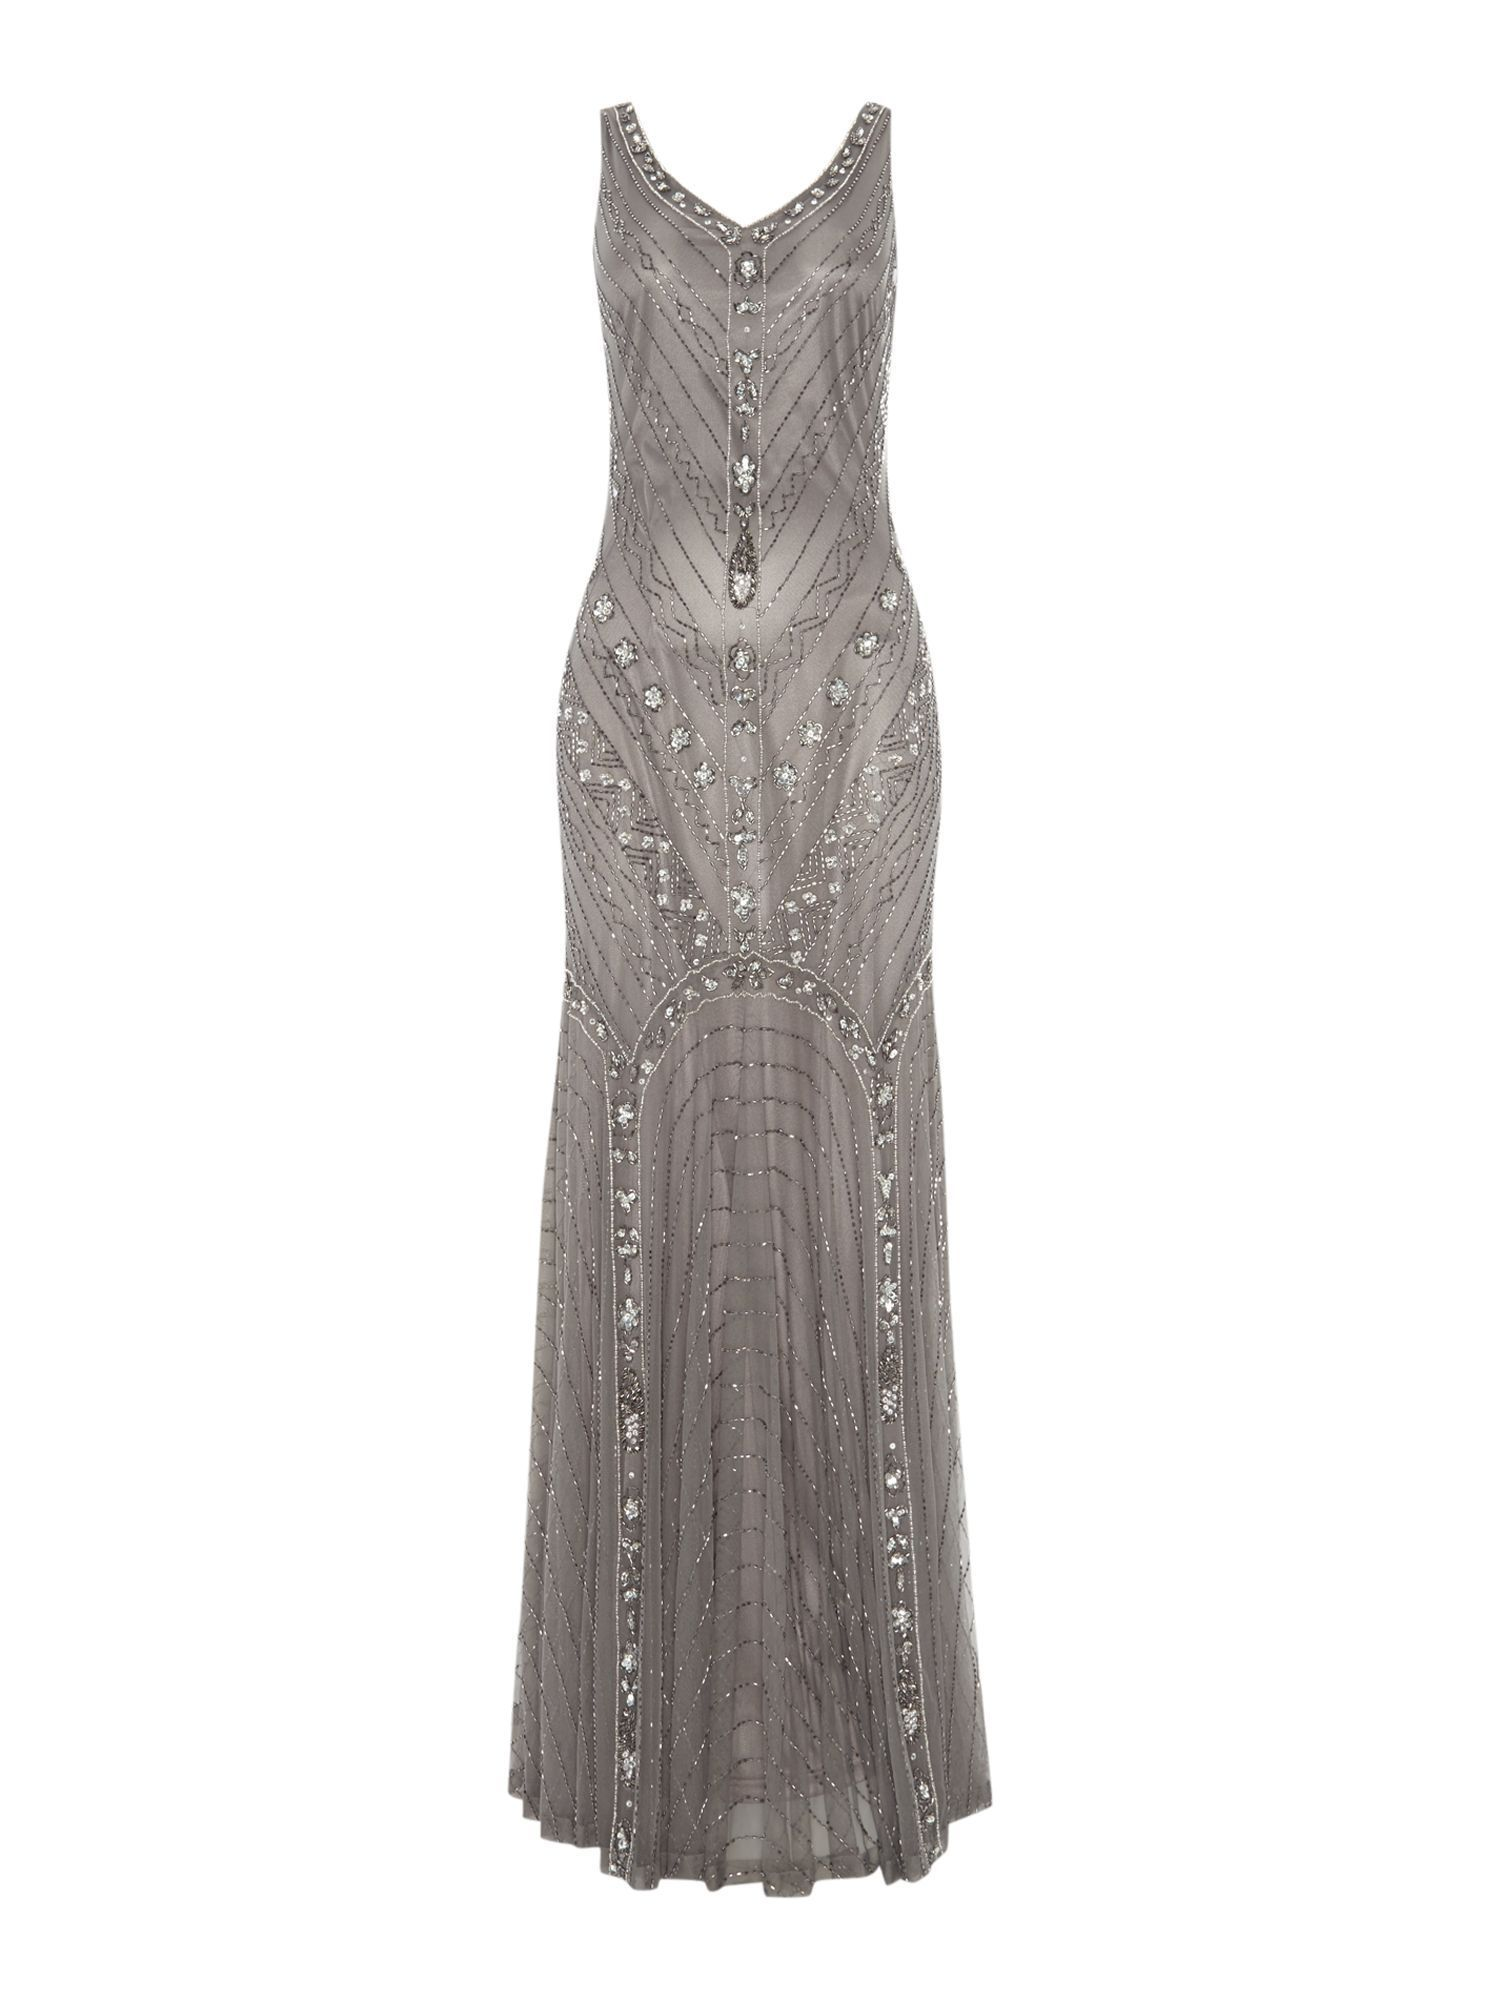 1920s Style Dresses UK- Day to Evening, Gatsby to Downton Abbey ...